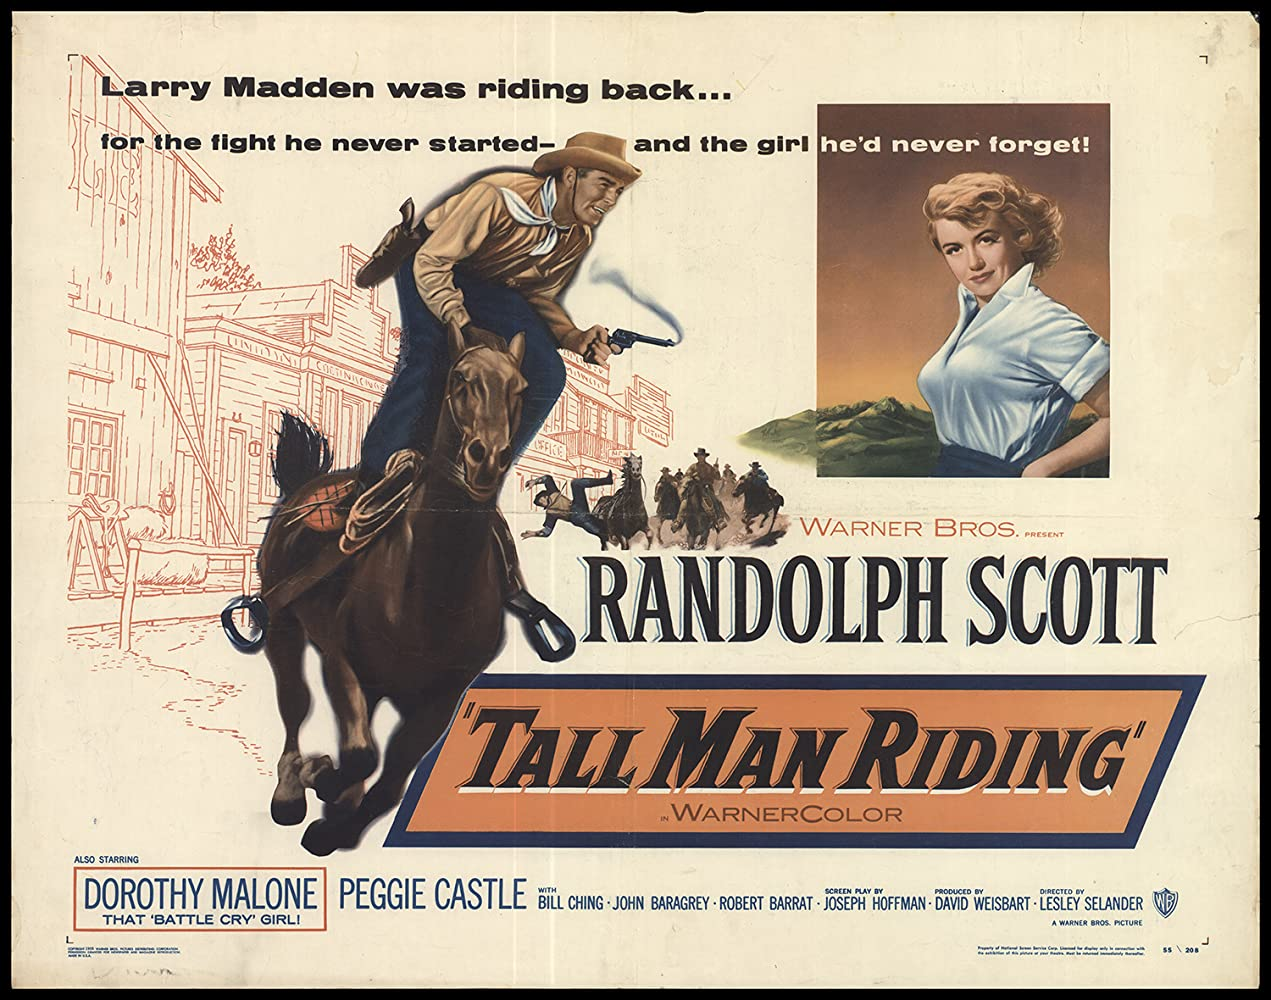 Randolph Scott and Dorothy Malone in Tall Man Riding (1955)